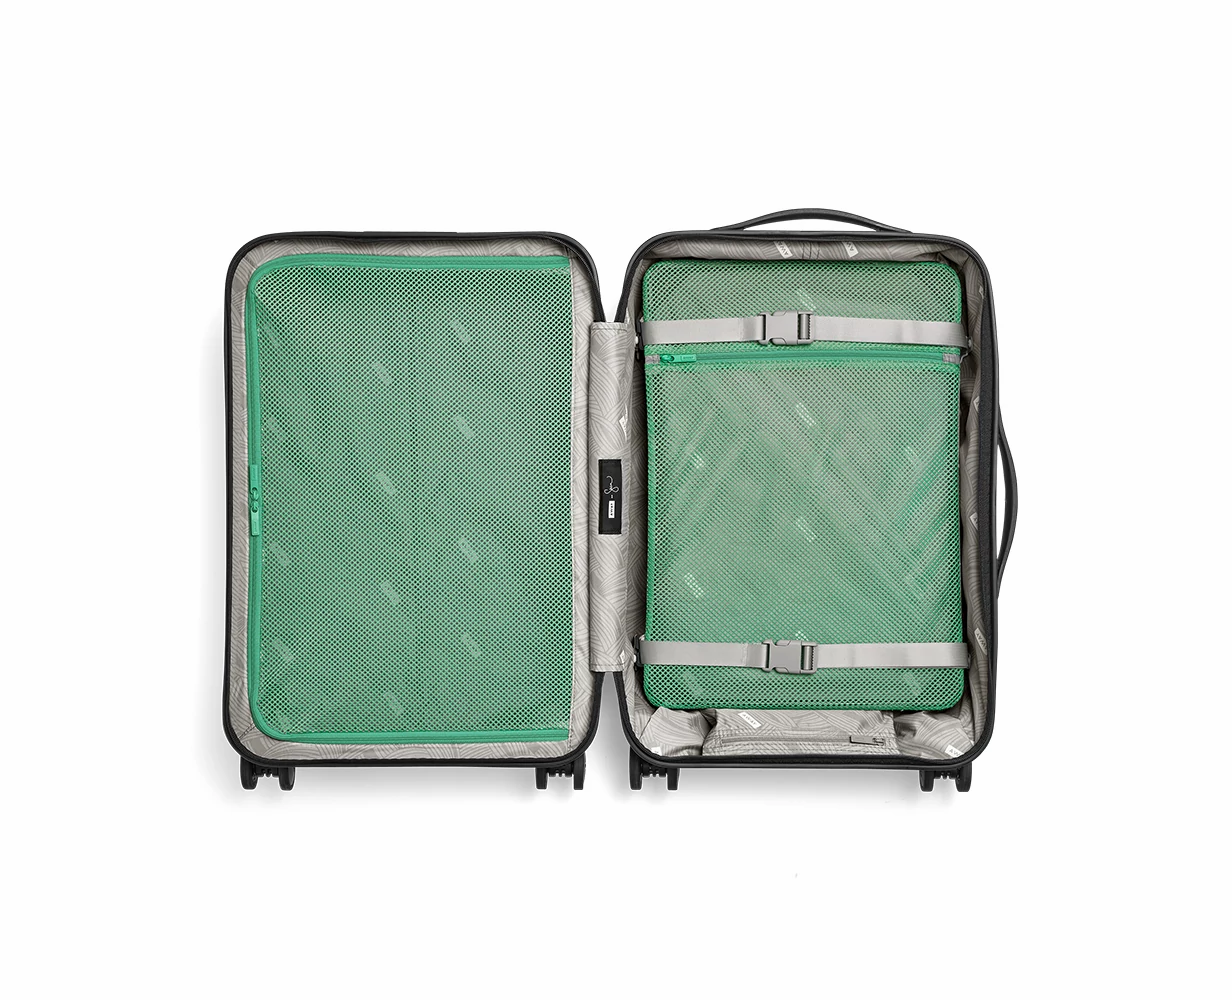 Bigger Carry-On in Light-Swirl shown open with interior compression pad on the right